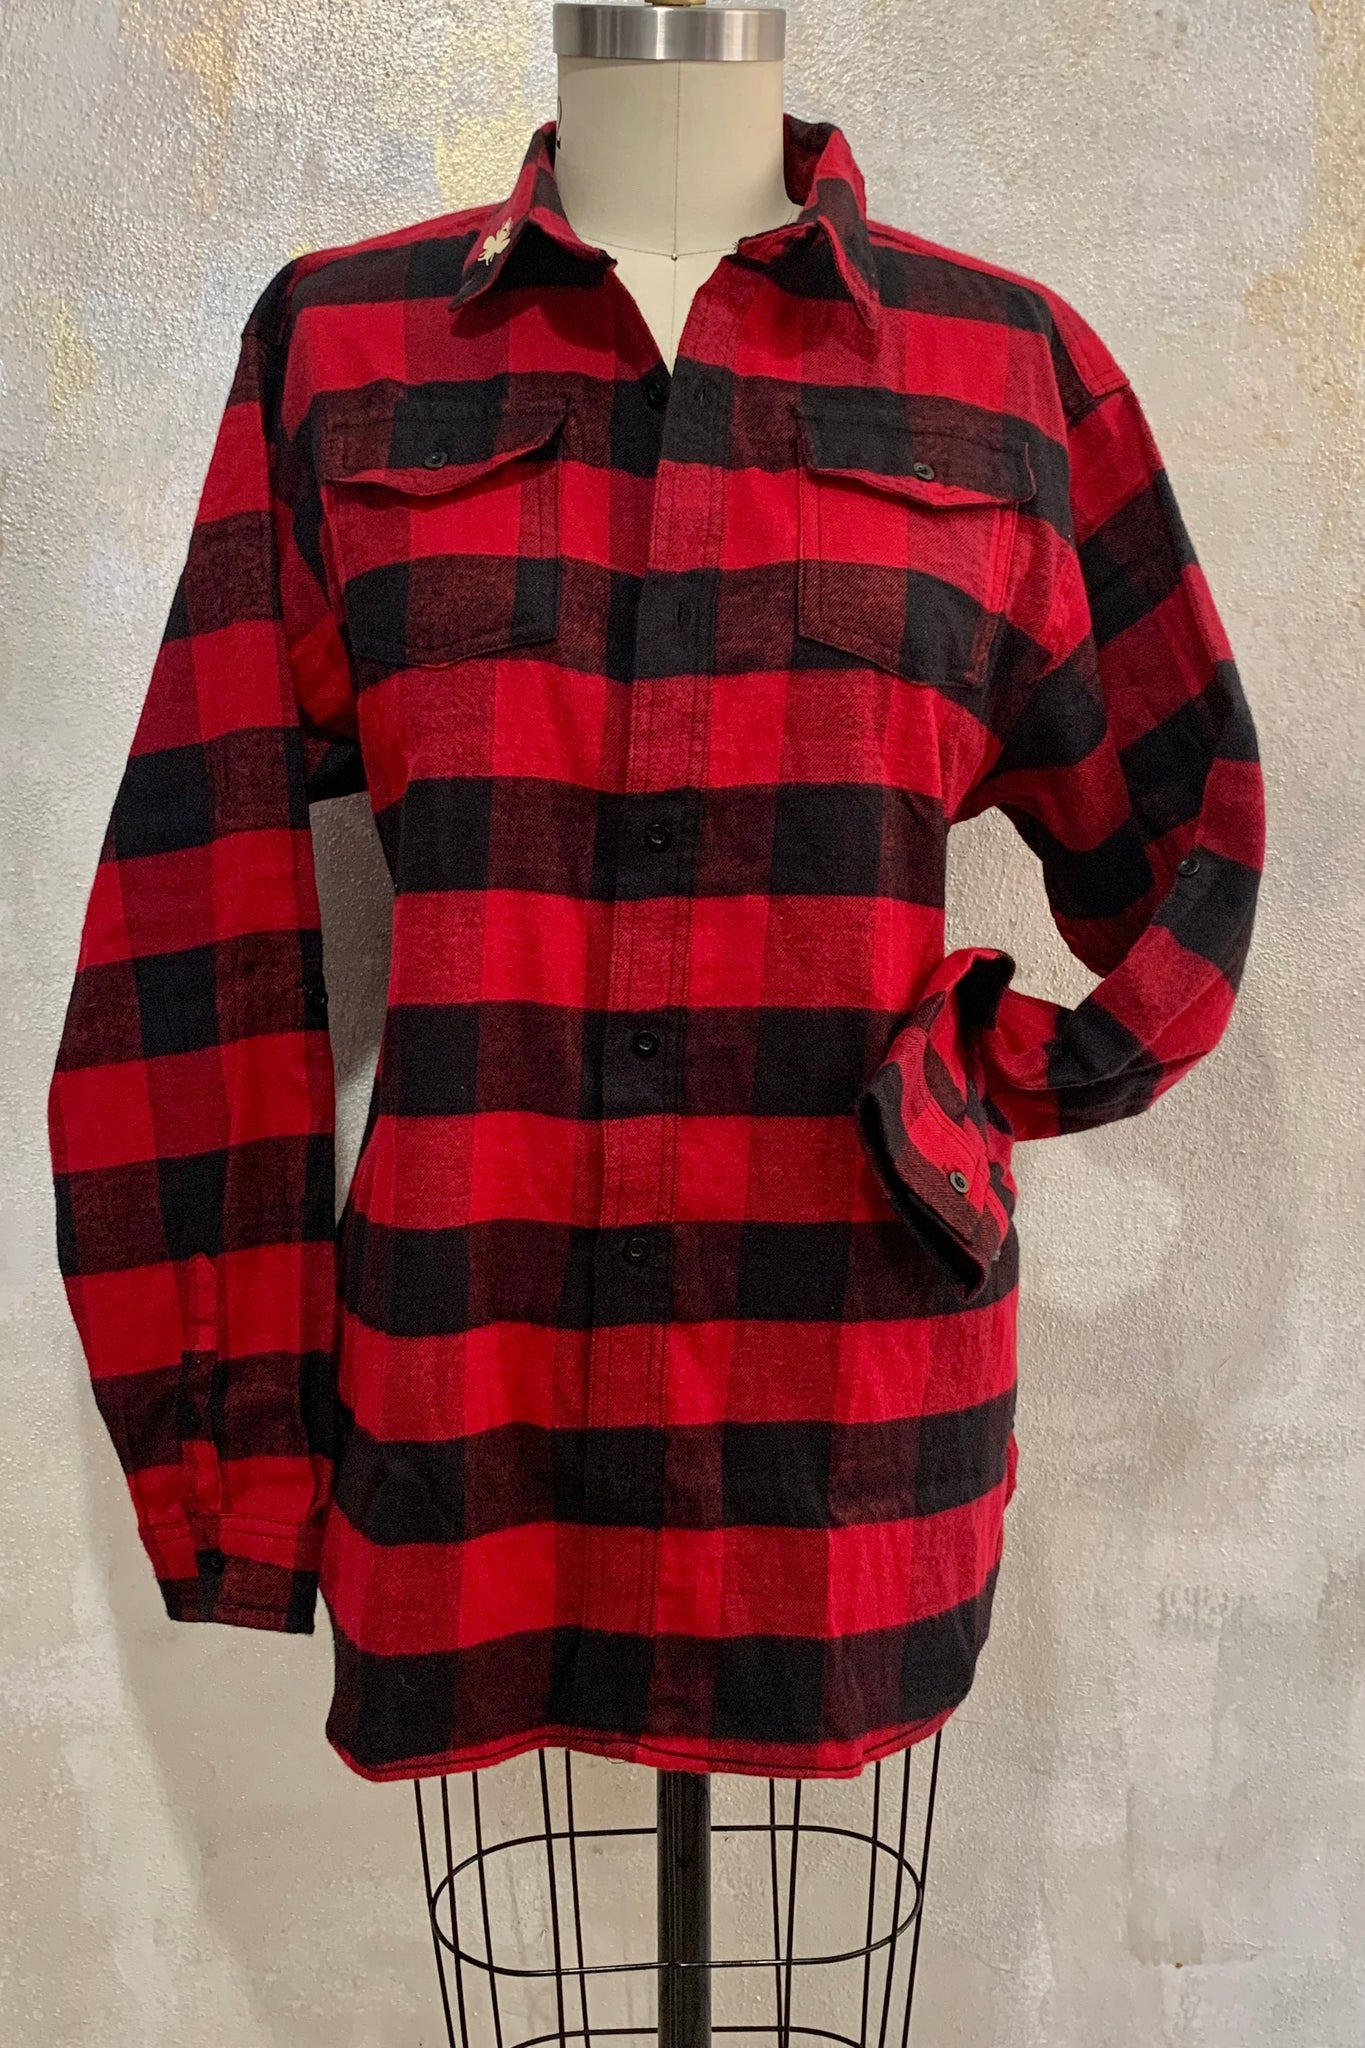 Grandpa's B's Red Flannel Shirt